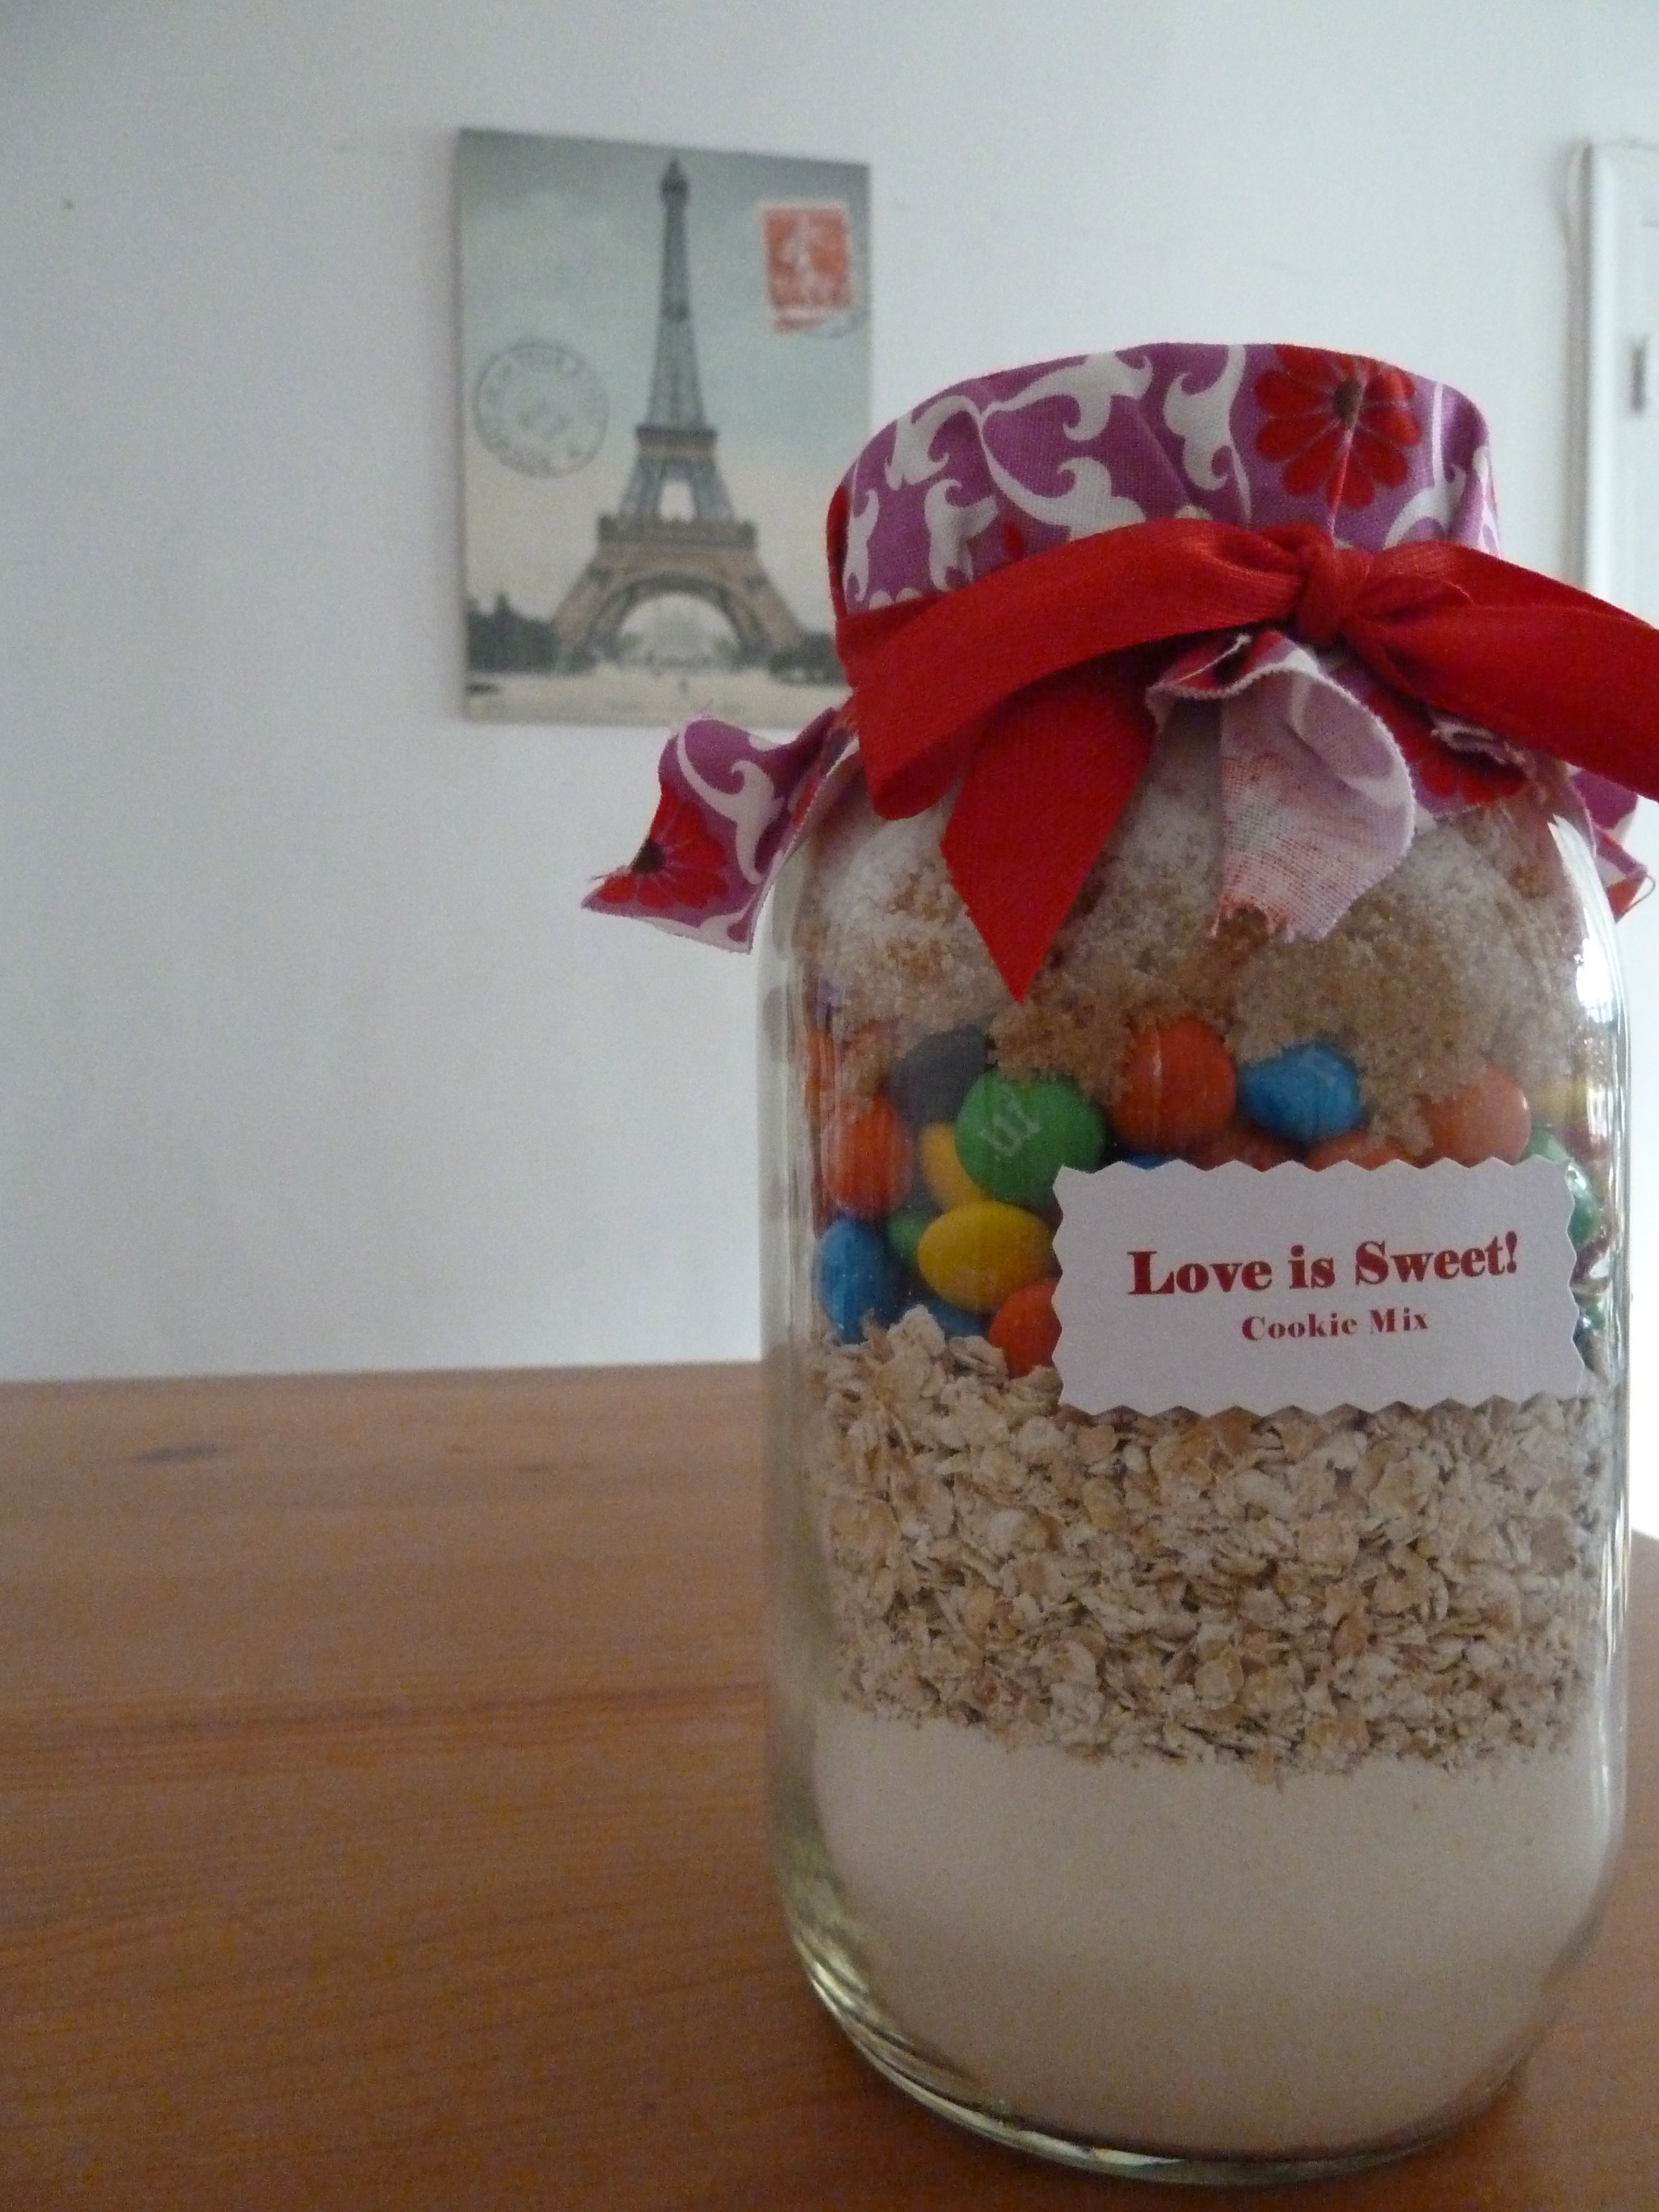 10 Most Popular Homemade Bridal Shower Gift Ideas cute diy bridal shower favor love is sweet cookie mix a favor 1 2020